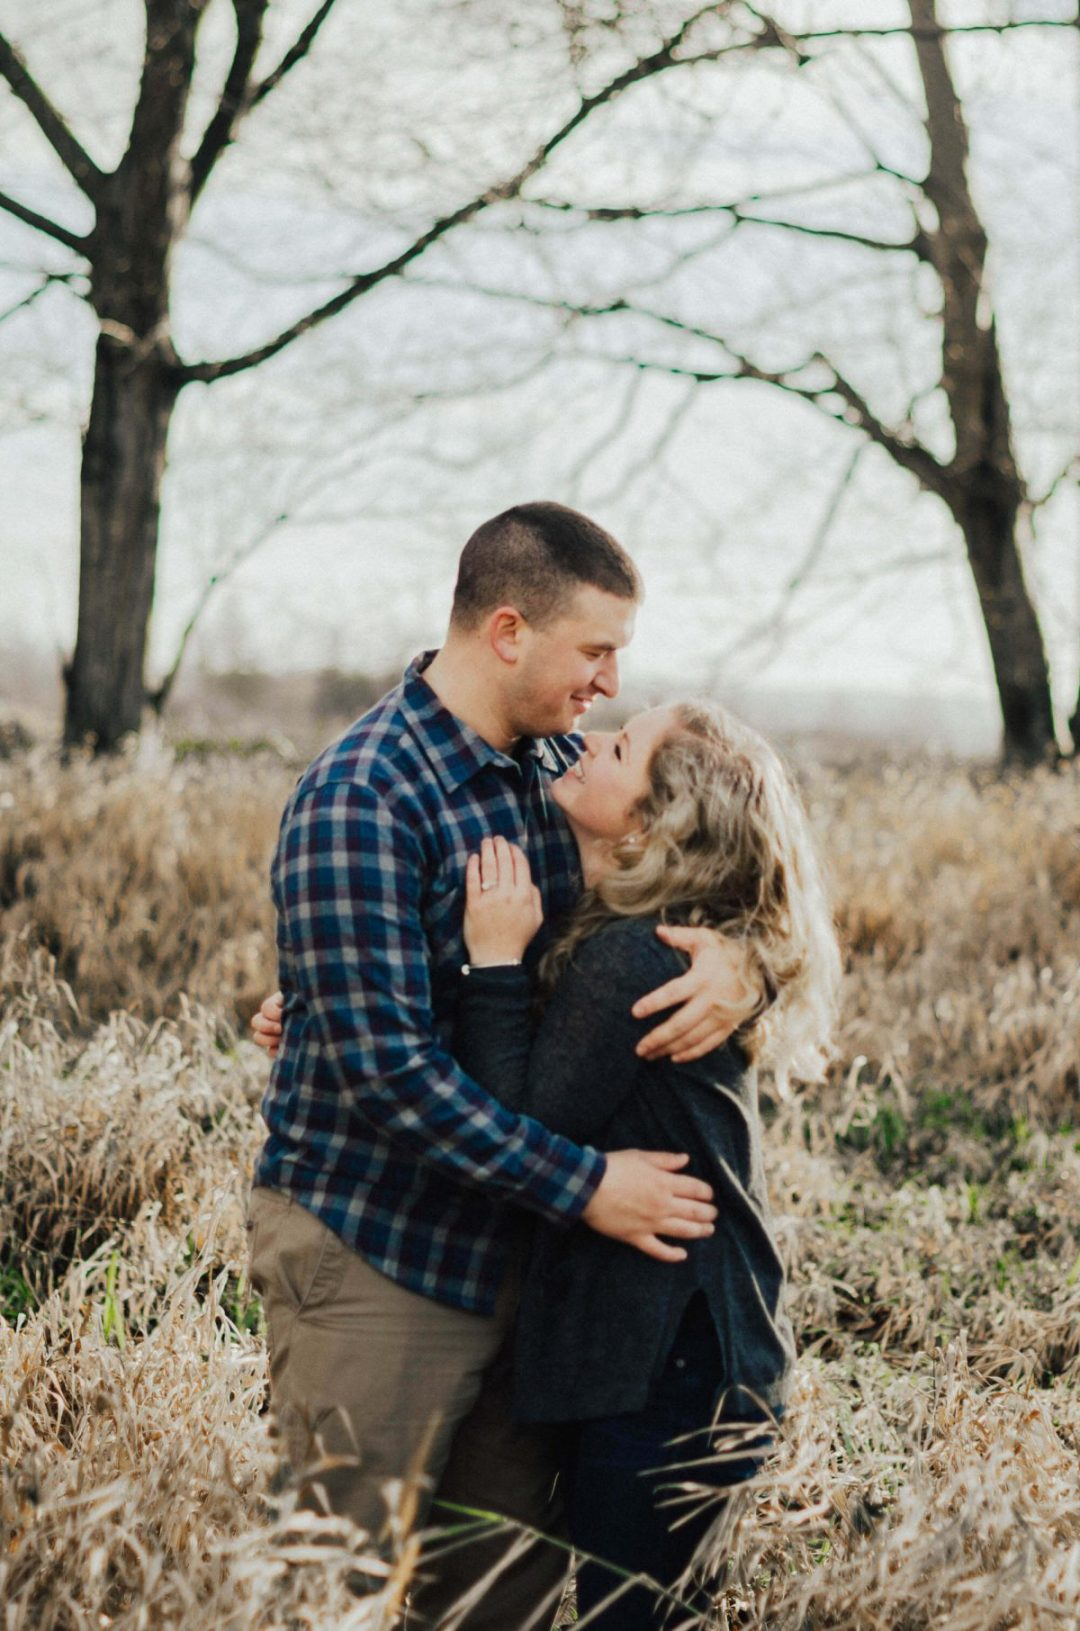 military-couple, military-engagement-photos, everett-engagement-photos, seattle-wedding-photographer, seattle-engagement-photographer, engagement-photographer, everett-engagement-photos,